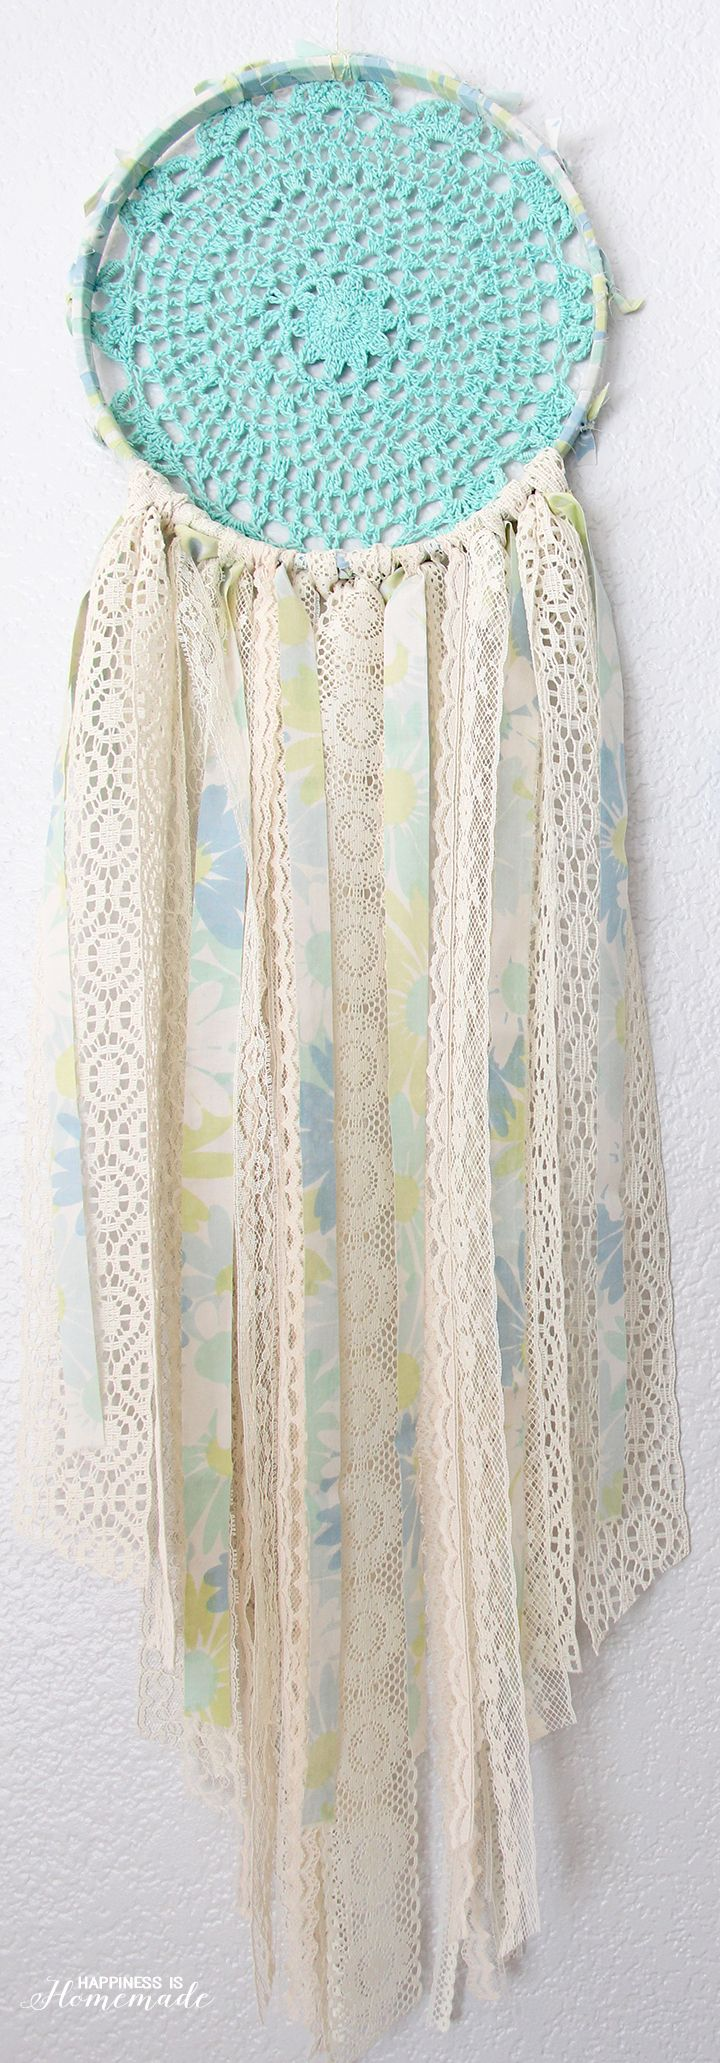 Vintage Sheet & Lace Doily Dream Catcher - Happiness is Homemade